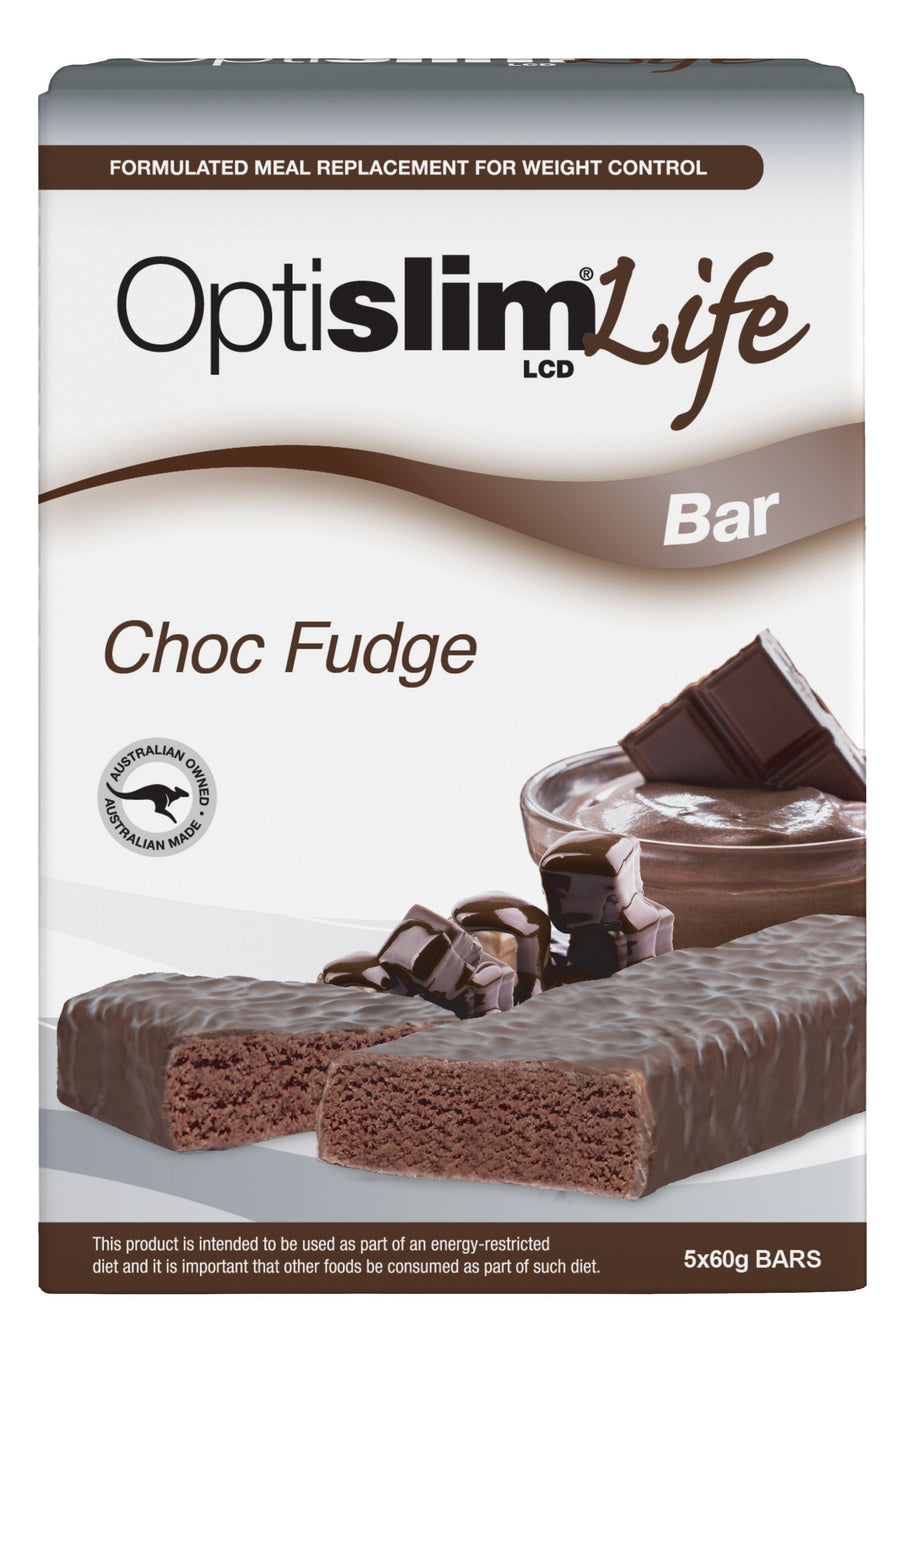 Optislim Life LCD Bar Choc Fudge(5x60g) Weight Loss OptiSlim